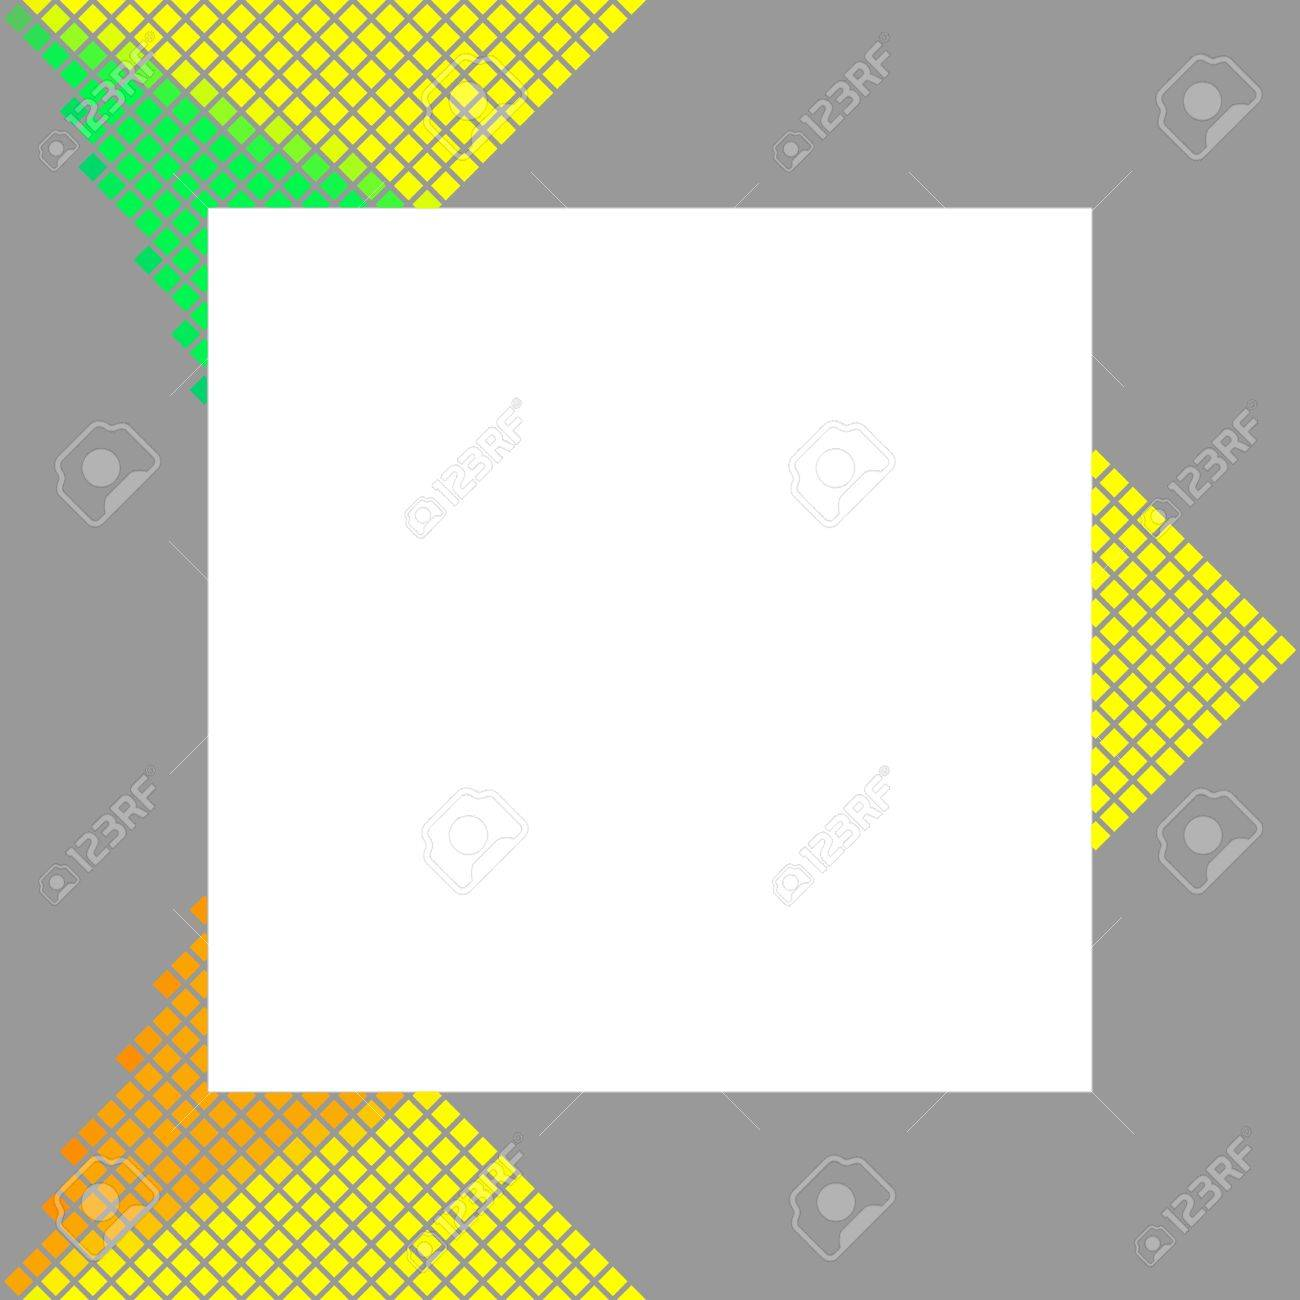 Modern Gray Frame With Yellow Orange Green Pixelated Design Element